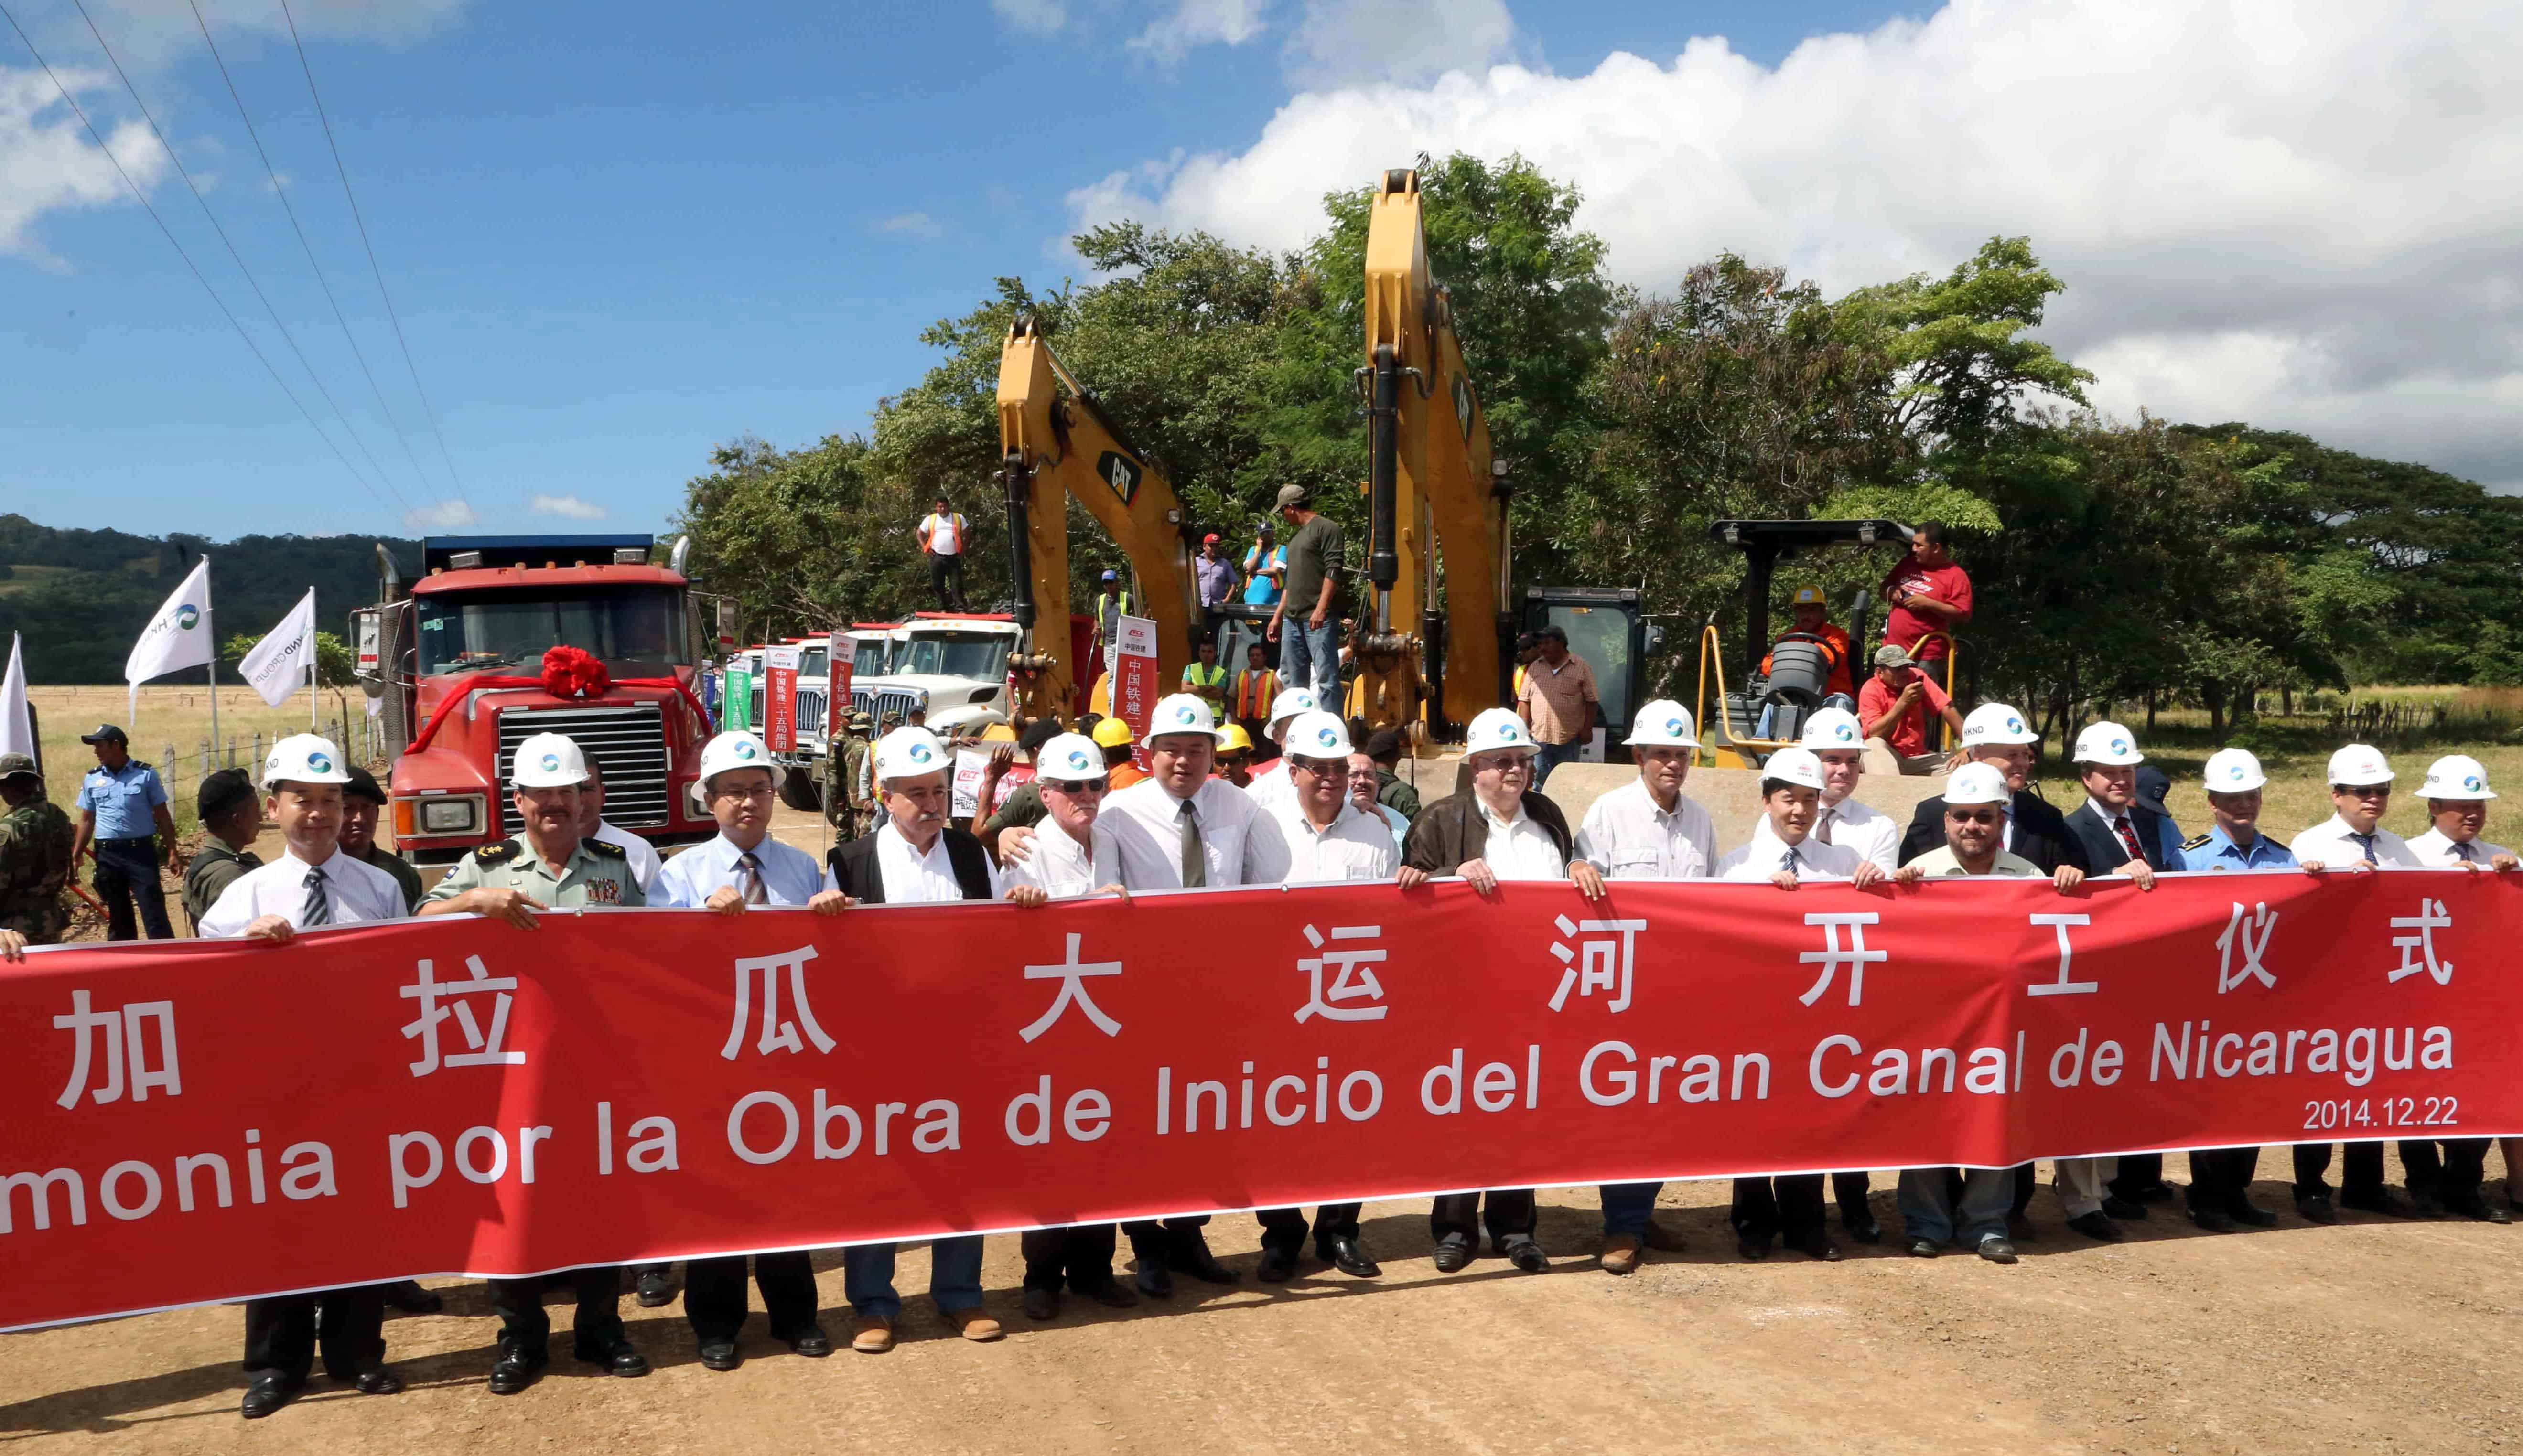 Members of HKND Group and the Nicaraguan government attend the inauguration of construction of an inter-oceanic canal in Tola.